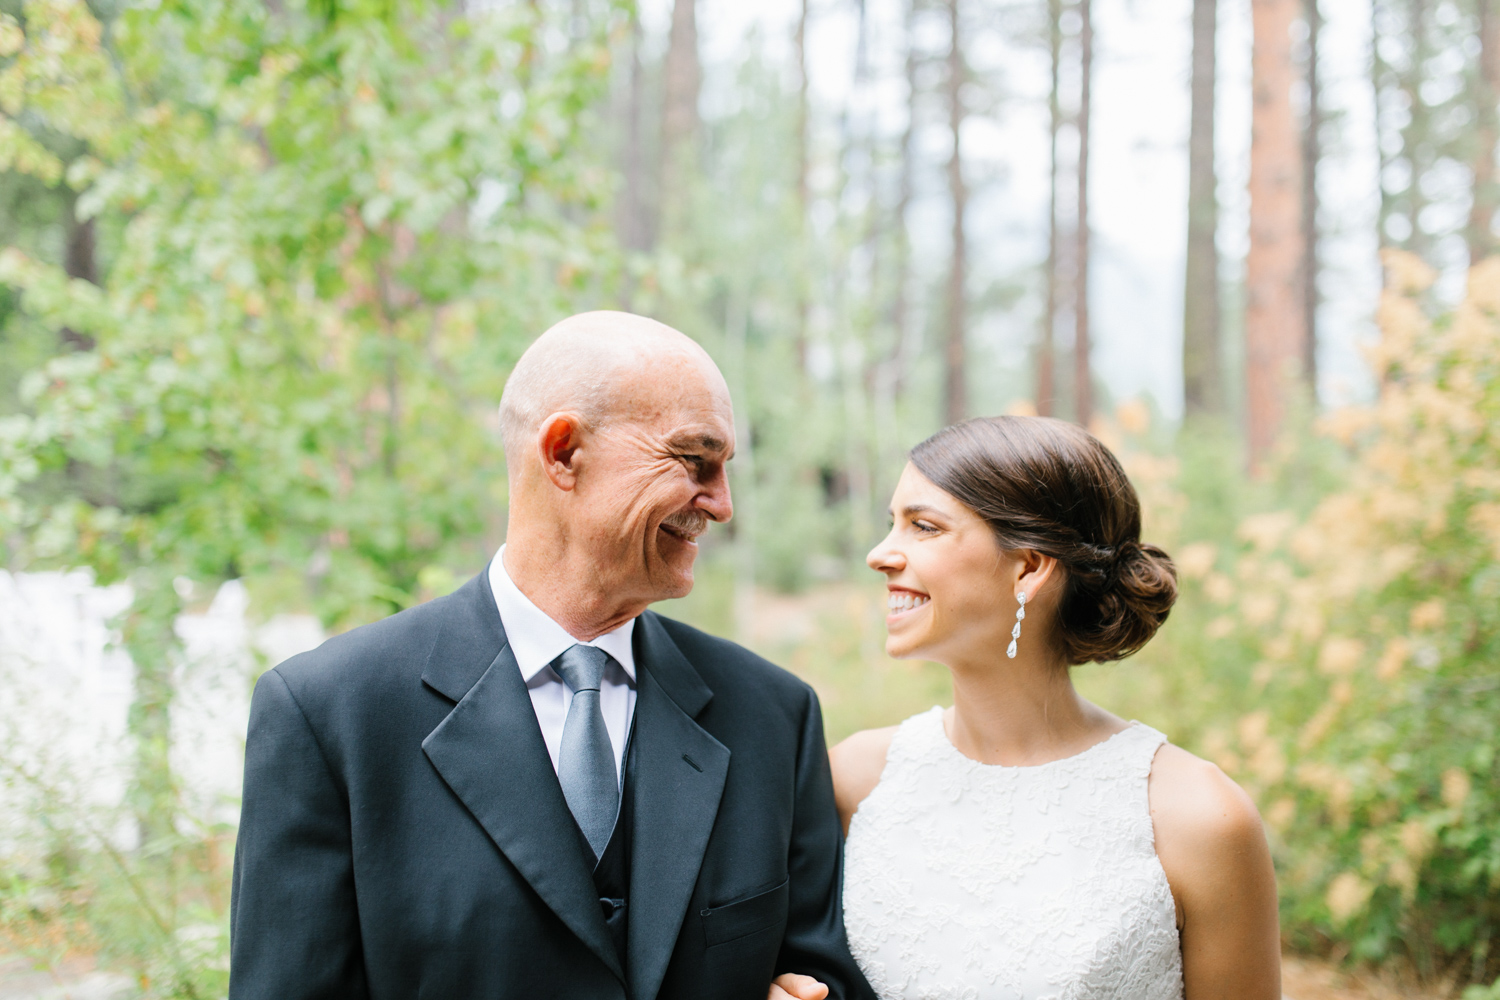 Grey and White Wedding in the Mountains of Leavenworth, Washington | Sleeping Lady | Classic and Timeless Wedding | VSCO | Father Daughter First Look Wedding DAy.jpg-1980.jpg